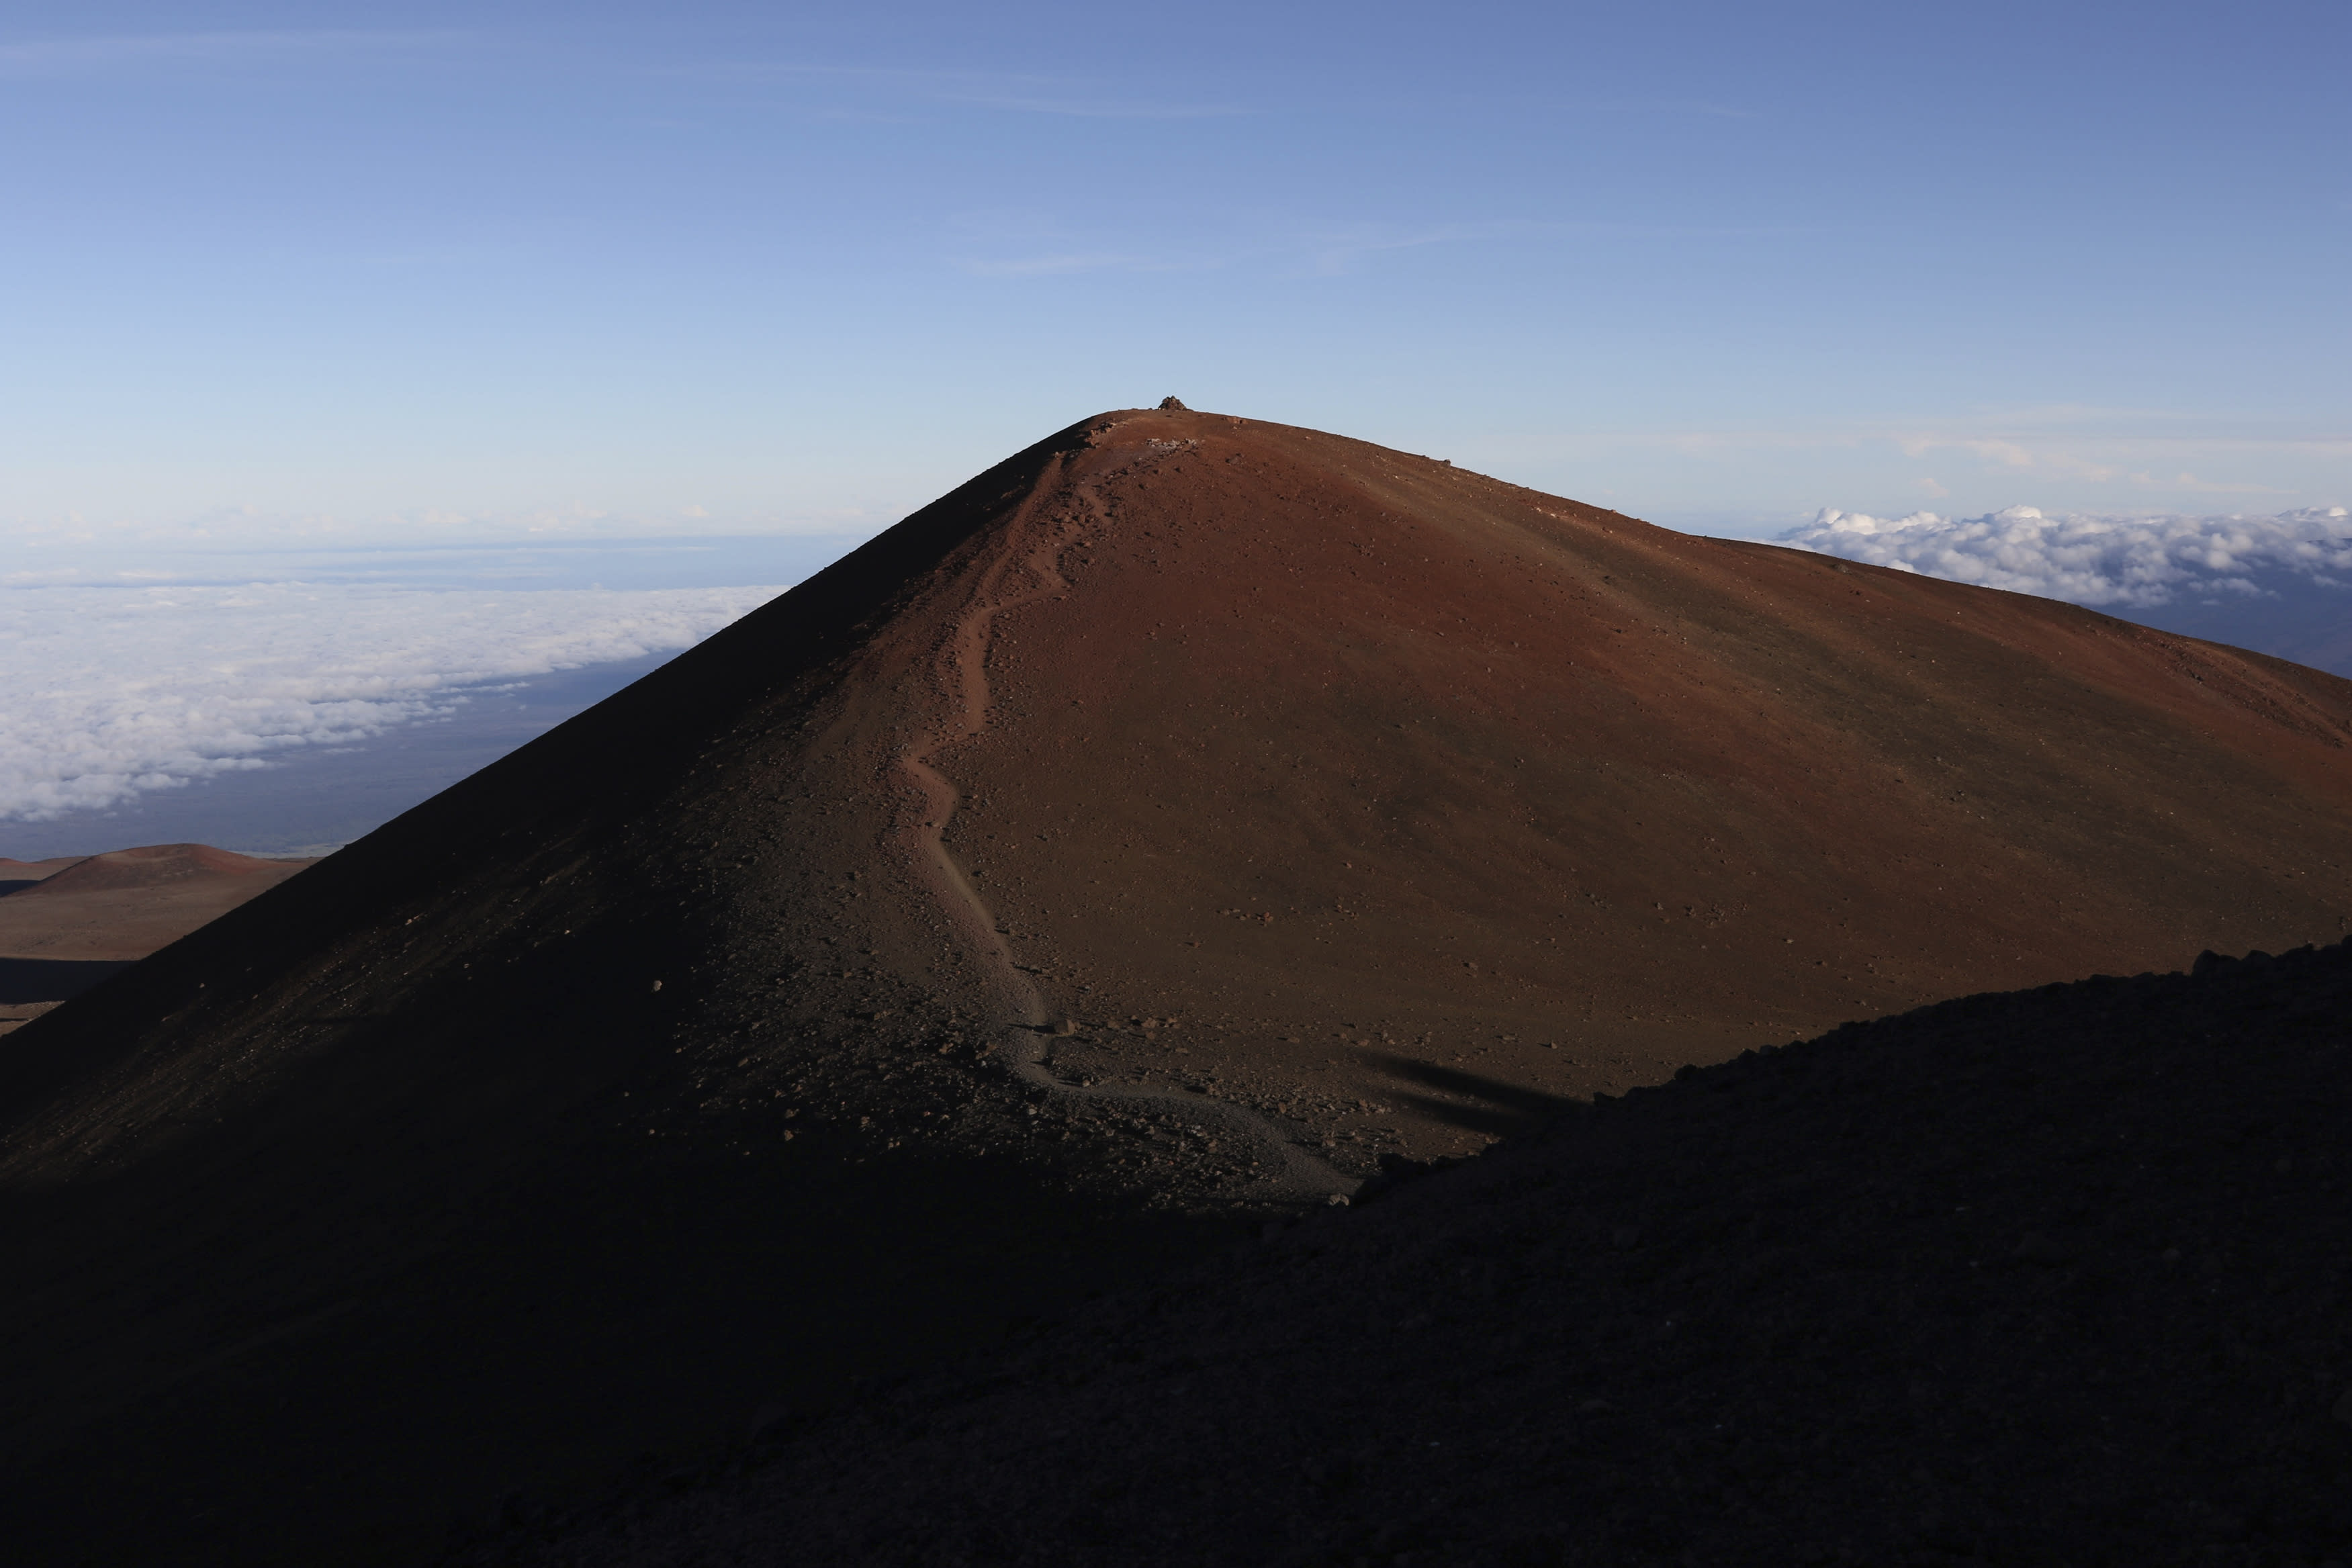 The summit of Hawaii's Mauna Kea is shown on Sunday, July 14, 2019. Hundreds of demonstrators are gathered at the base of Hawaii's tallest mountain to protest the construction of a giant telescope on land that some Native Hawaiians consider sacred. State and local officials will try to close the road to the summit of Mauna Kea Monday morning to allow trucks carrying construction equipment to make their way to the top. Officials say anyone breaking the law will be prosecuted. Protestors have blocked the roadway during previous attempts to begin construction and have been arrested. (AP Photo/Caleb Jones)